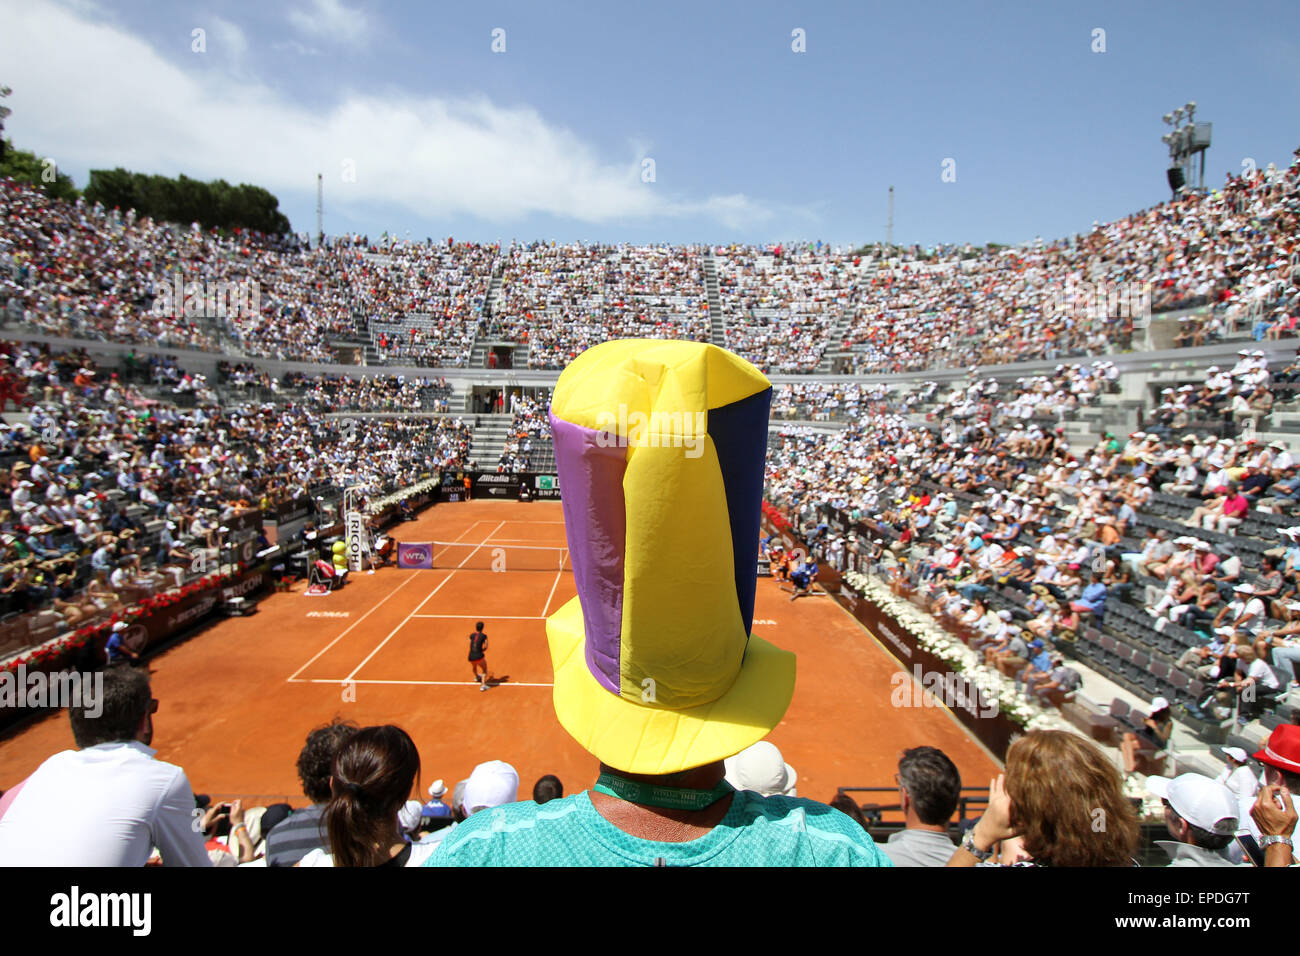 Rome, Italy. 17th May, 2015. A general view during the singles final match Maria Sharapova of Russia v Carla Suarez - Stock Image